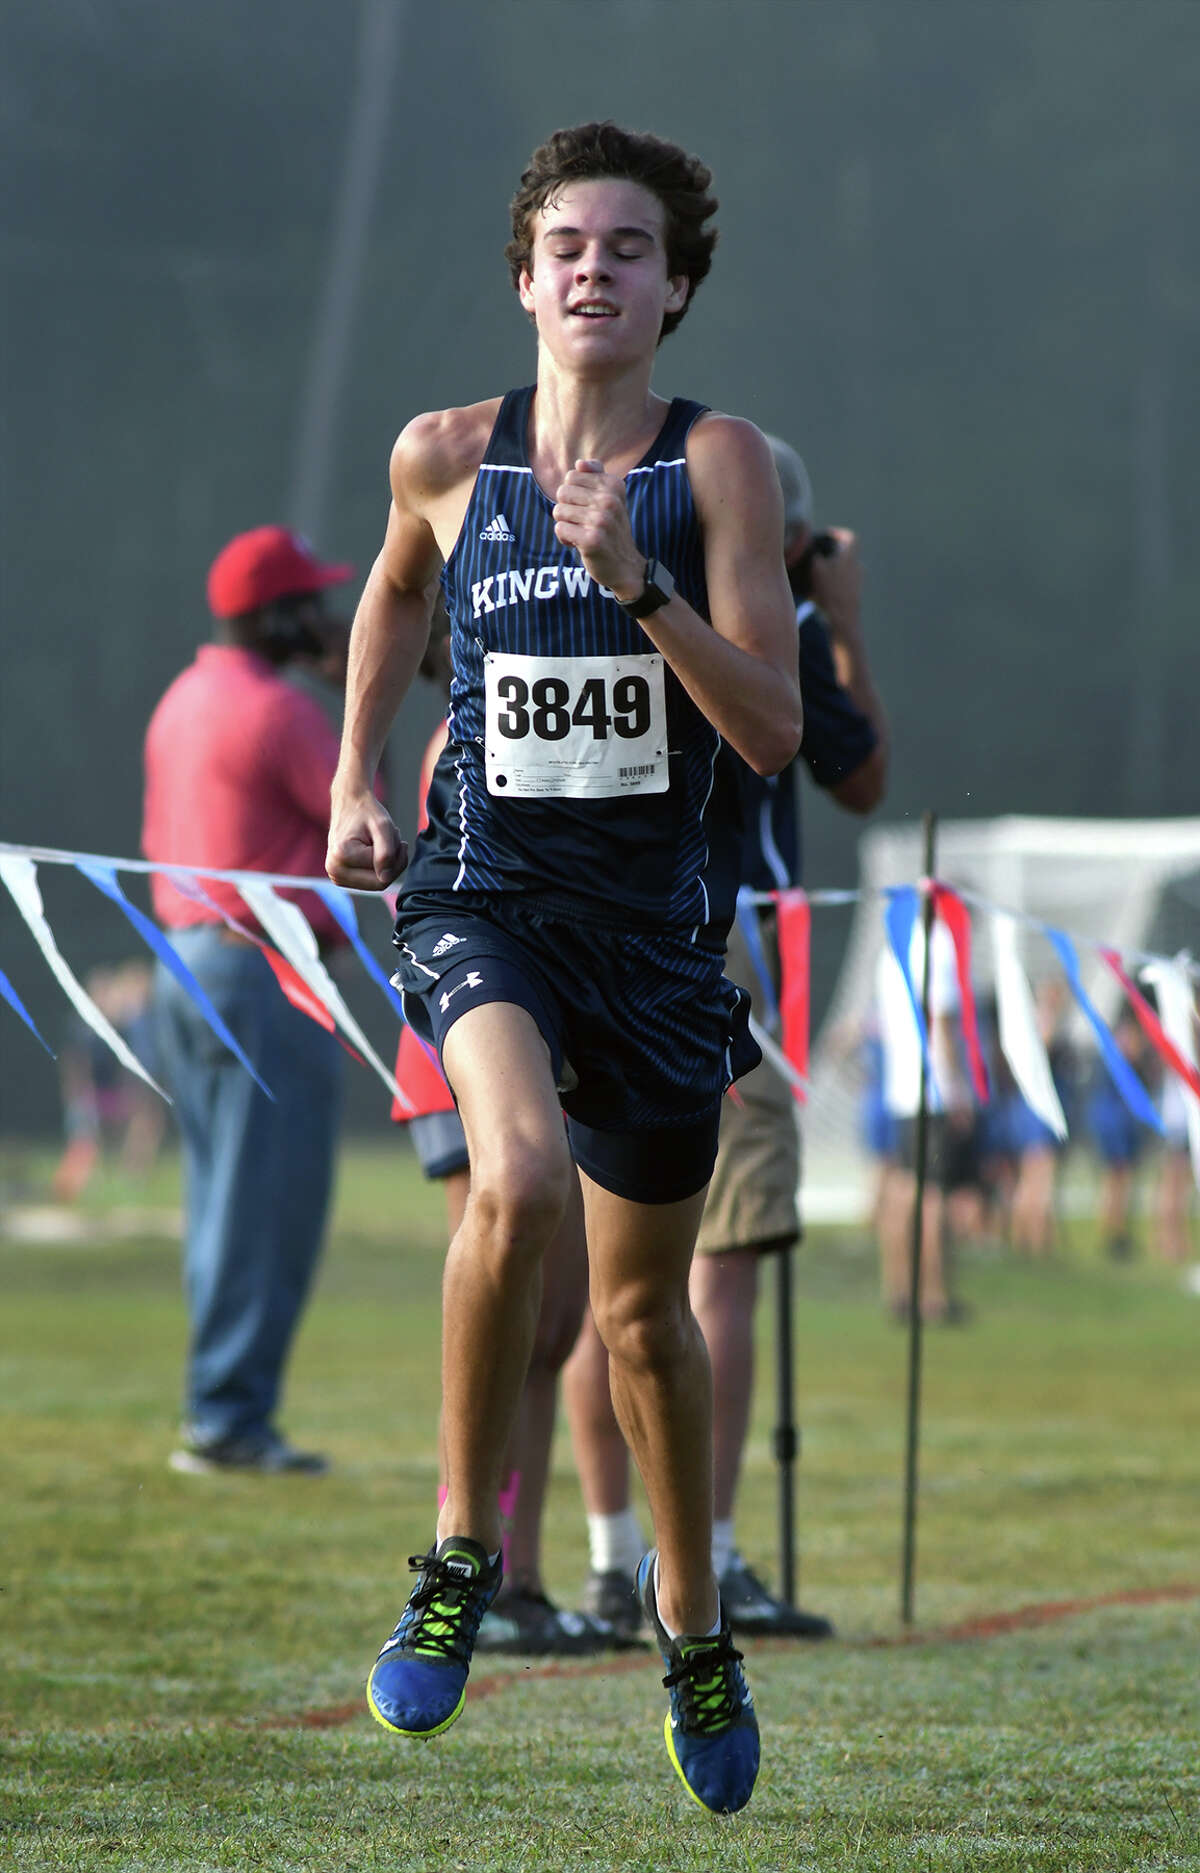 Kingwood's Nick Majerus pushes to the finish line during the Varsity Boys race at the District 21-6A Cross Country Championship at Atascocita High School on Oct. 13, 2017. (Photo by Jerry Baker/Freelance)